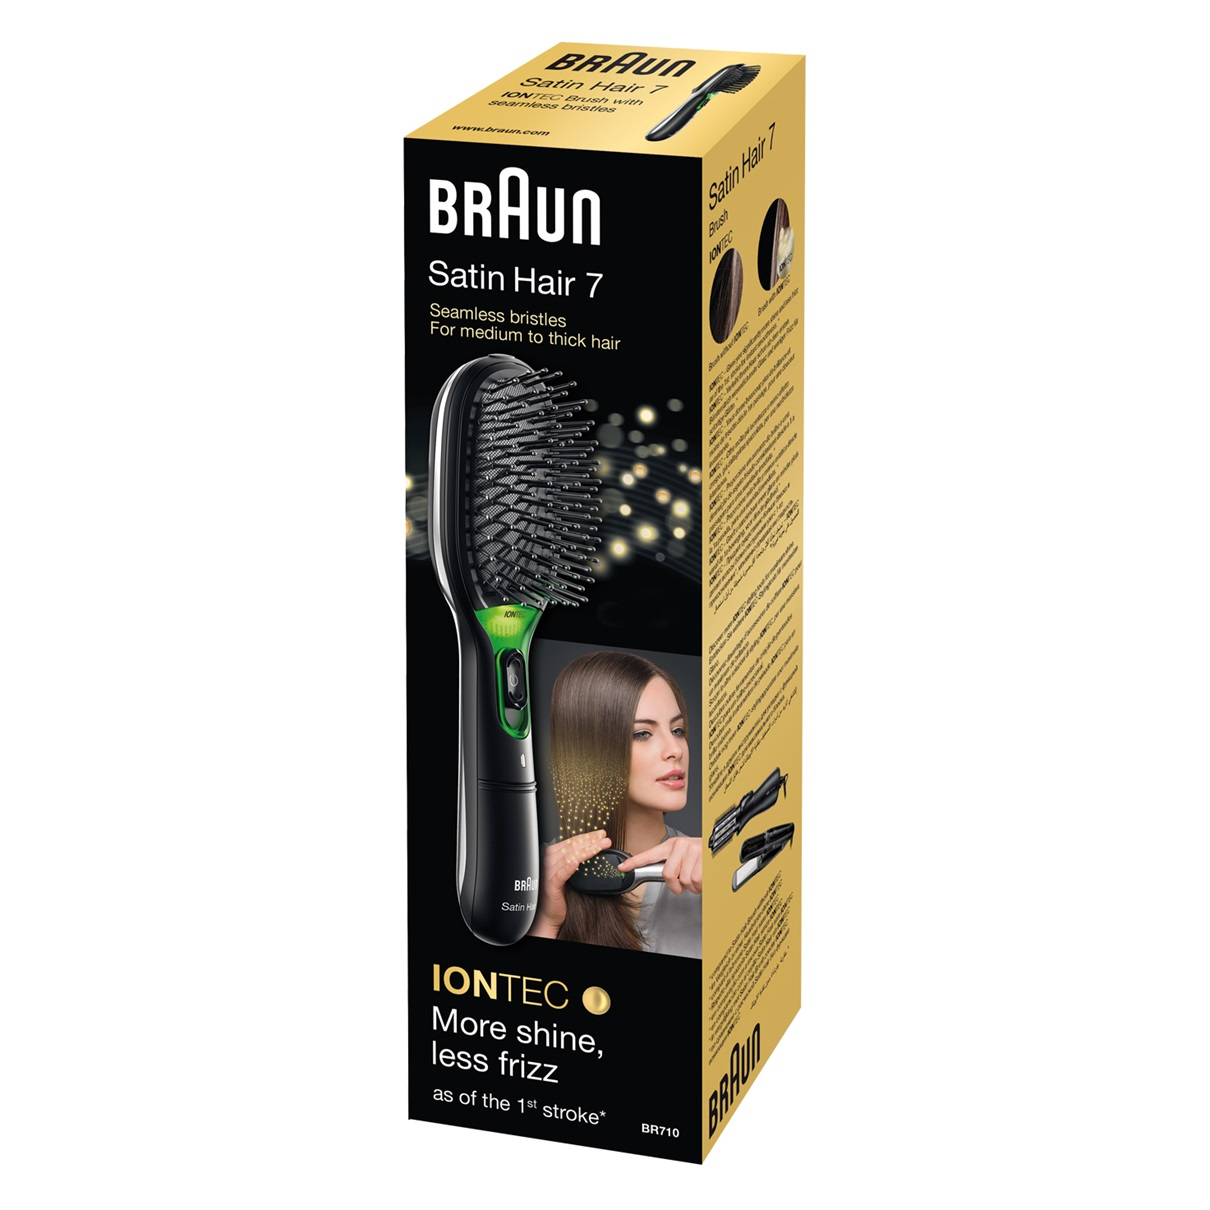 Braun Satin Hair 7 BR710 brush with IONTEC - packaging